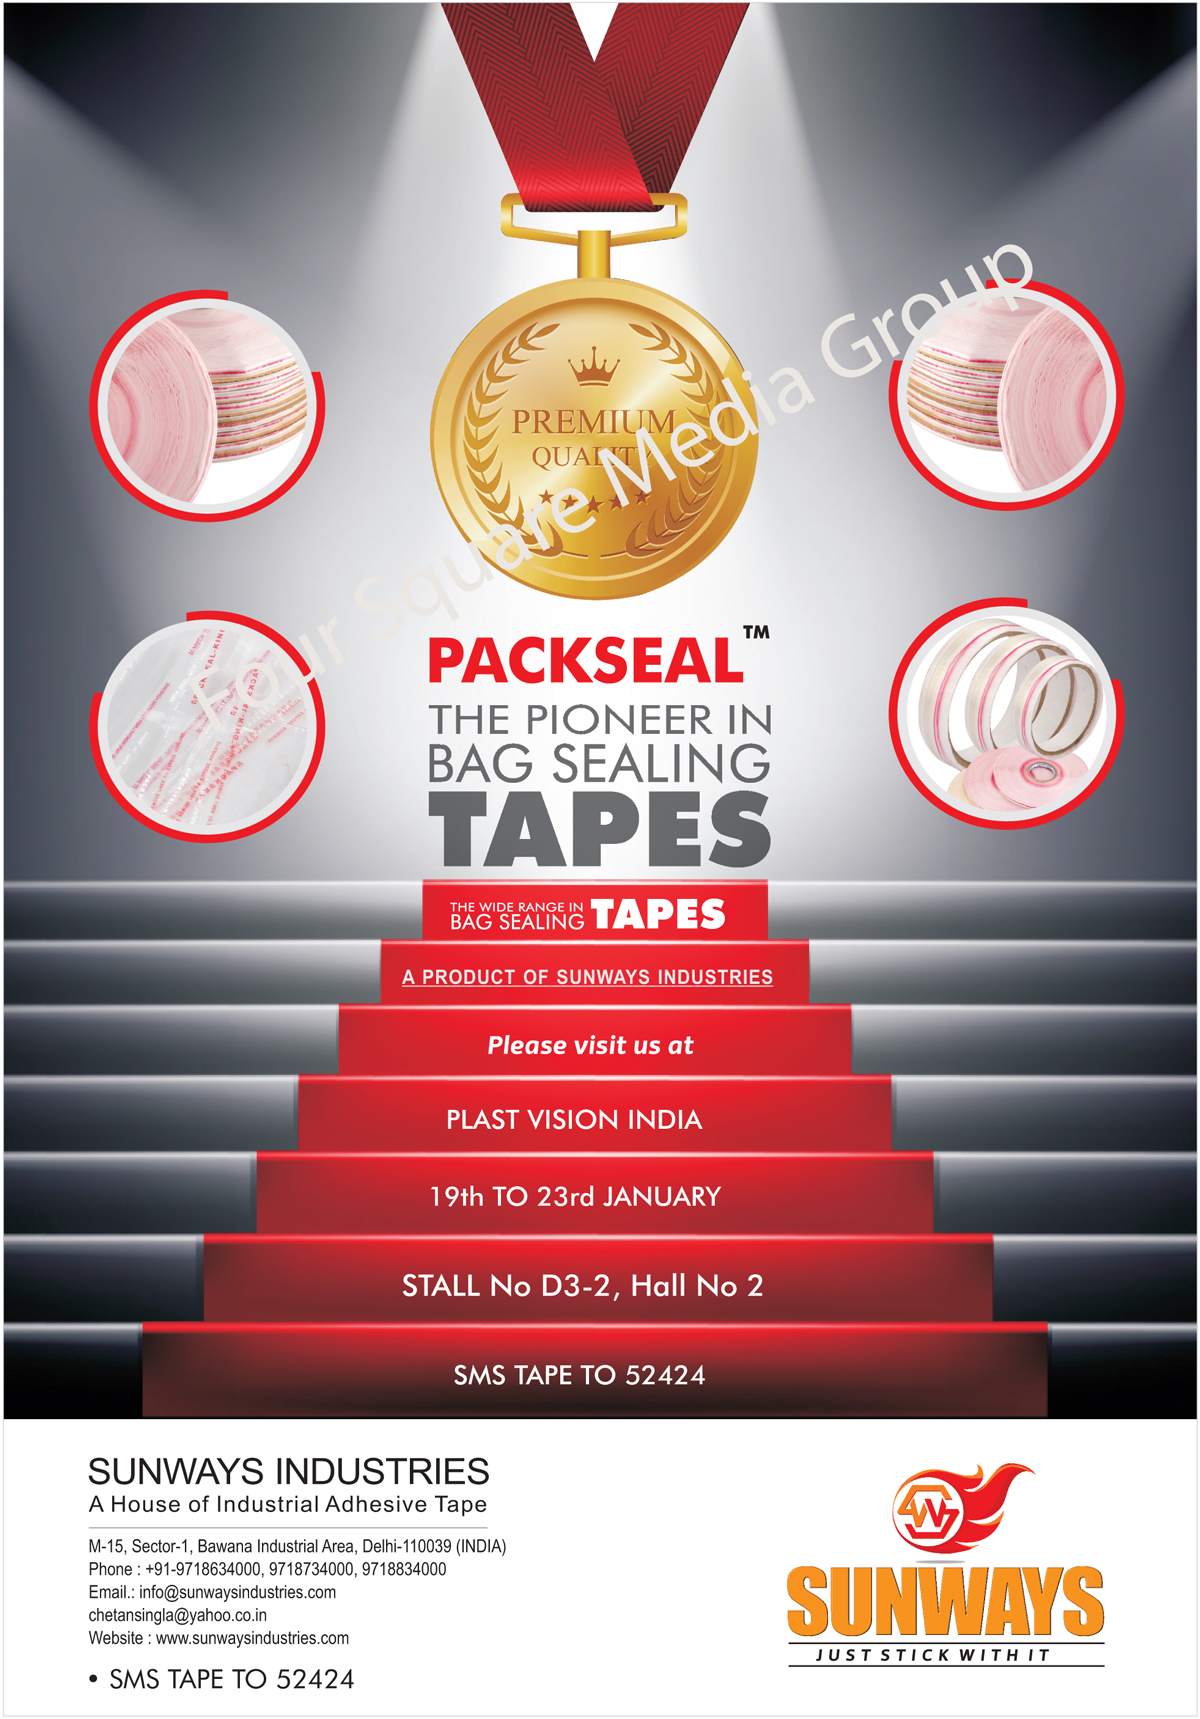 Industrial Adhesive Tapes, Plate Mounting Tapes, Single Side Cloth Tapes, Printed Packaging Tapes, PTFE Glass Cloth Tapes, Bag Sealing Tapes, Customized Bag Sealing Tapes, Customised Bag Sealing Tapes